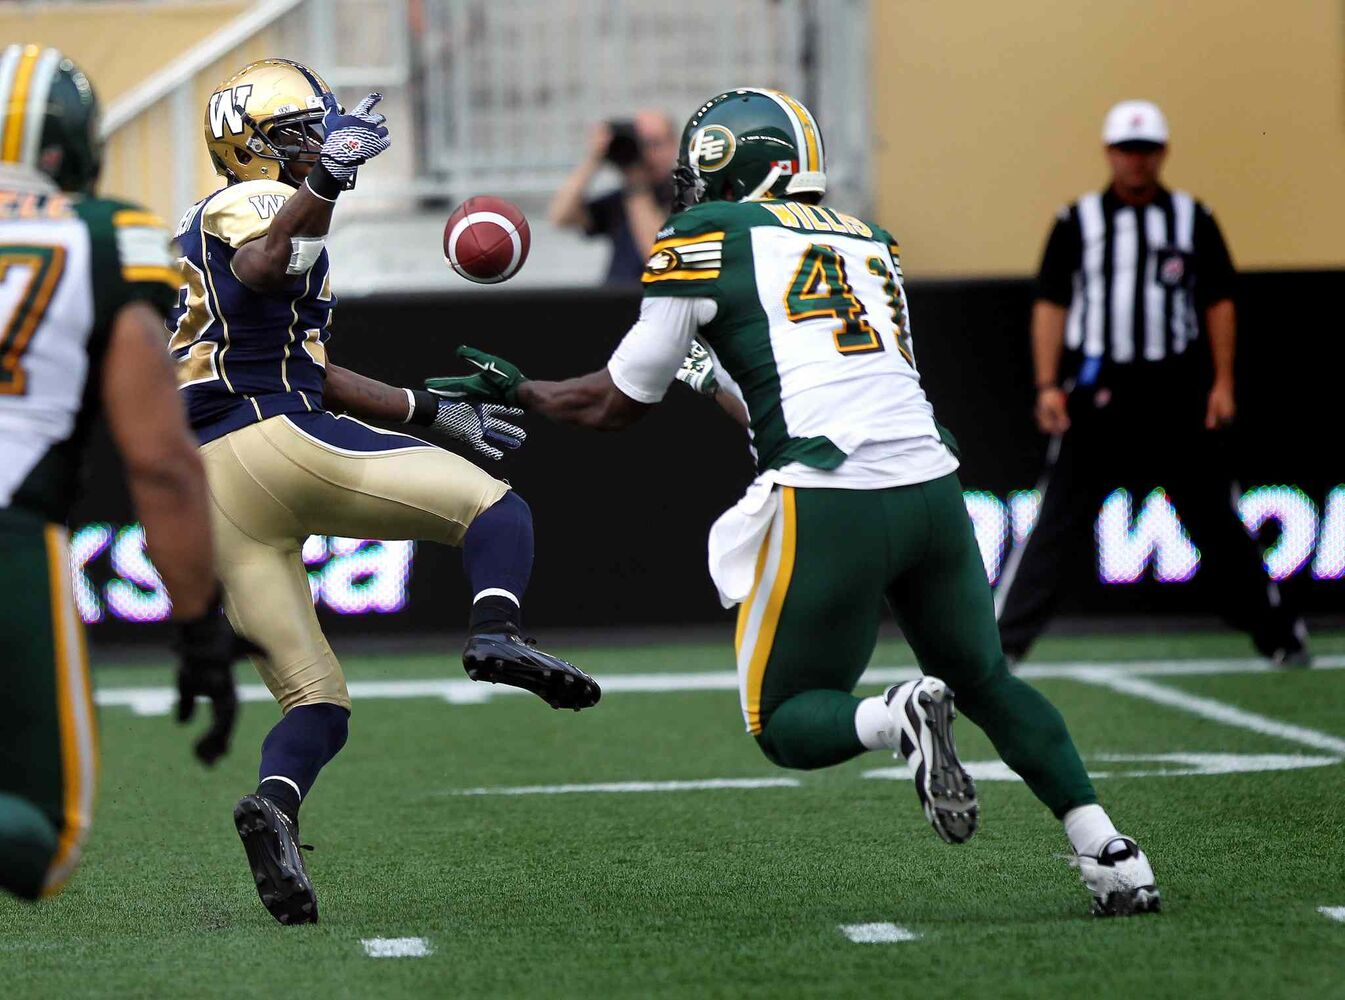 Winnipeg Blue Bombers' running back Nic Grigsby bobbles a pass into the waiting hands of Edmonton Eskimos' Odell Willis early in the game Thursday. Willis took it and ran to score the Eskimo's opening touch down.  (Phil Hossack / Winnipeg Free Press)